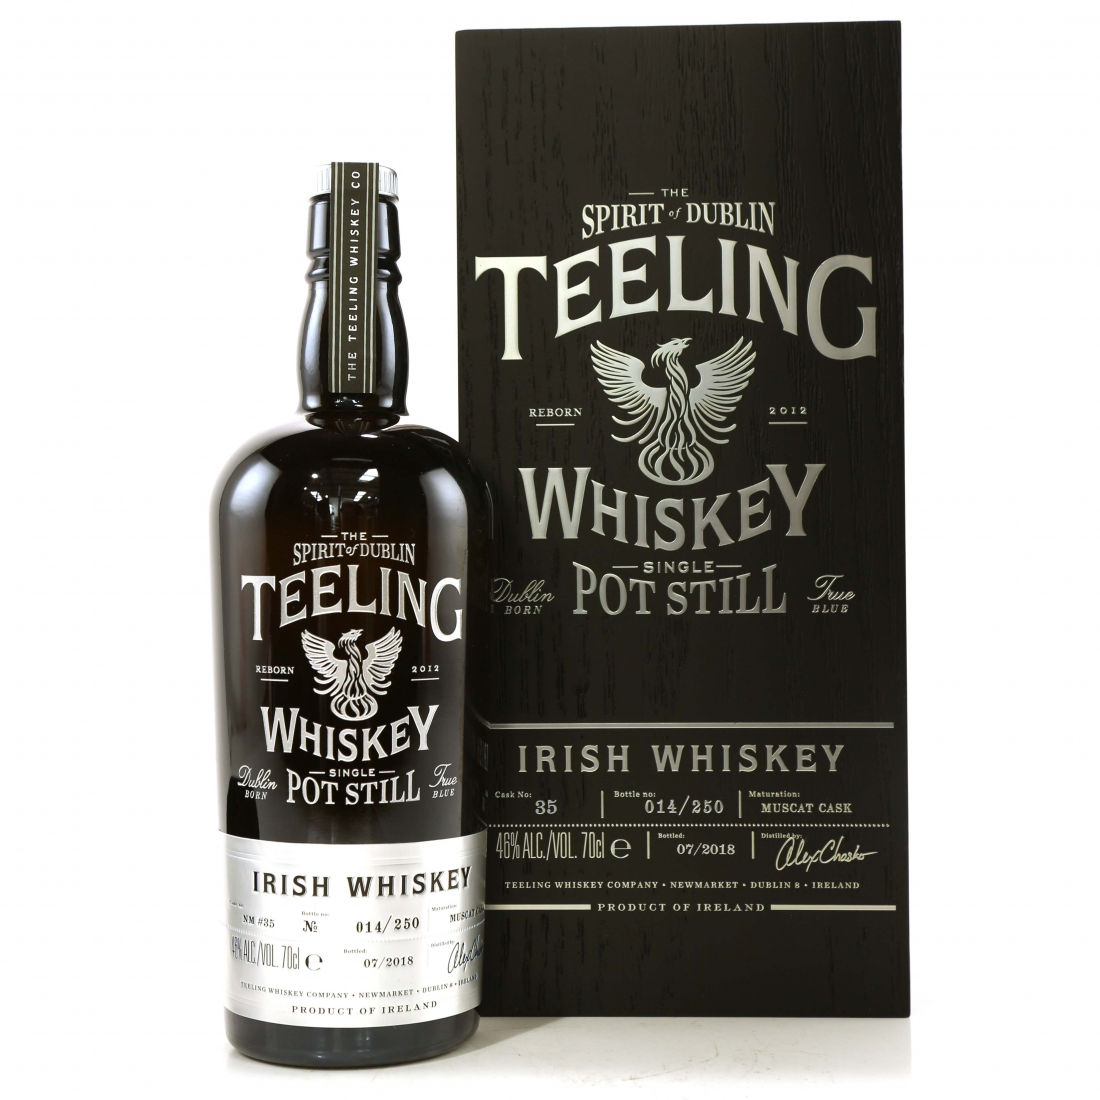 Teeling Celebratory Single Pot Still Whiskey / Bottle #014